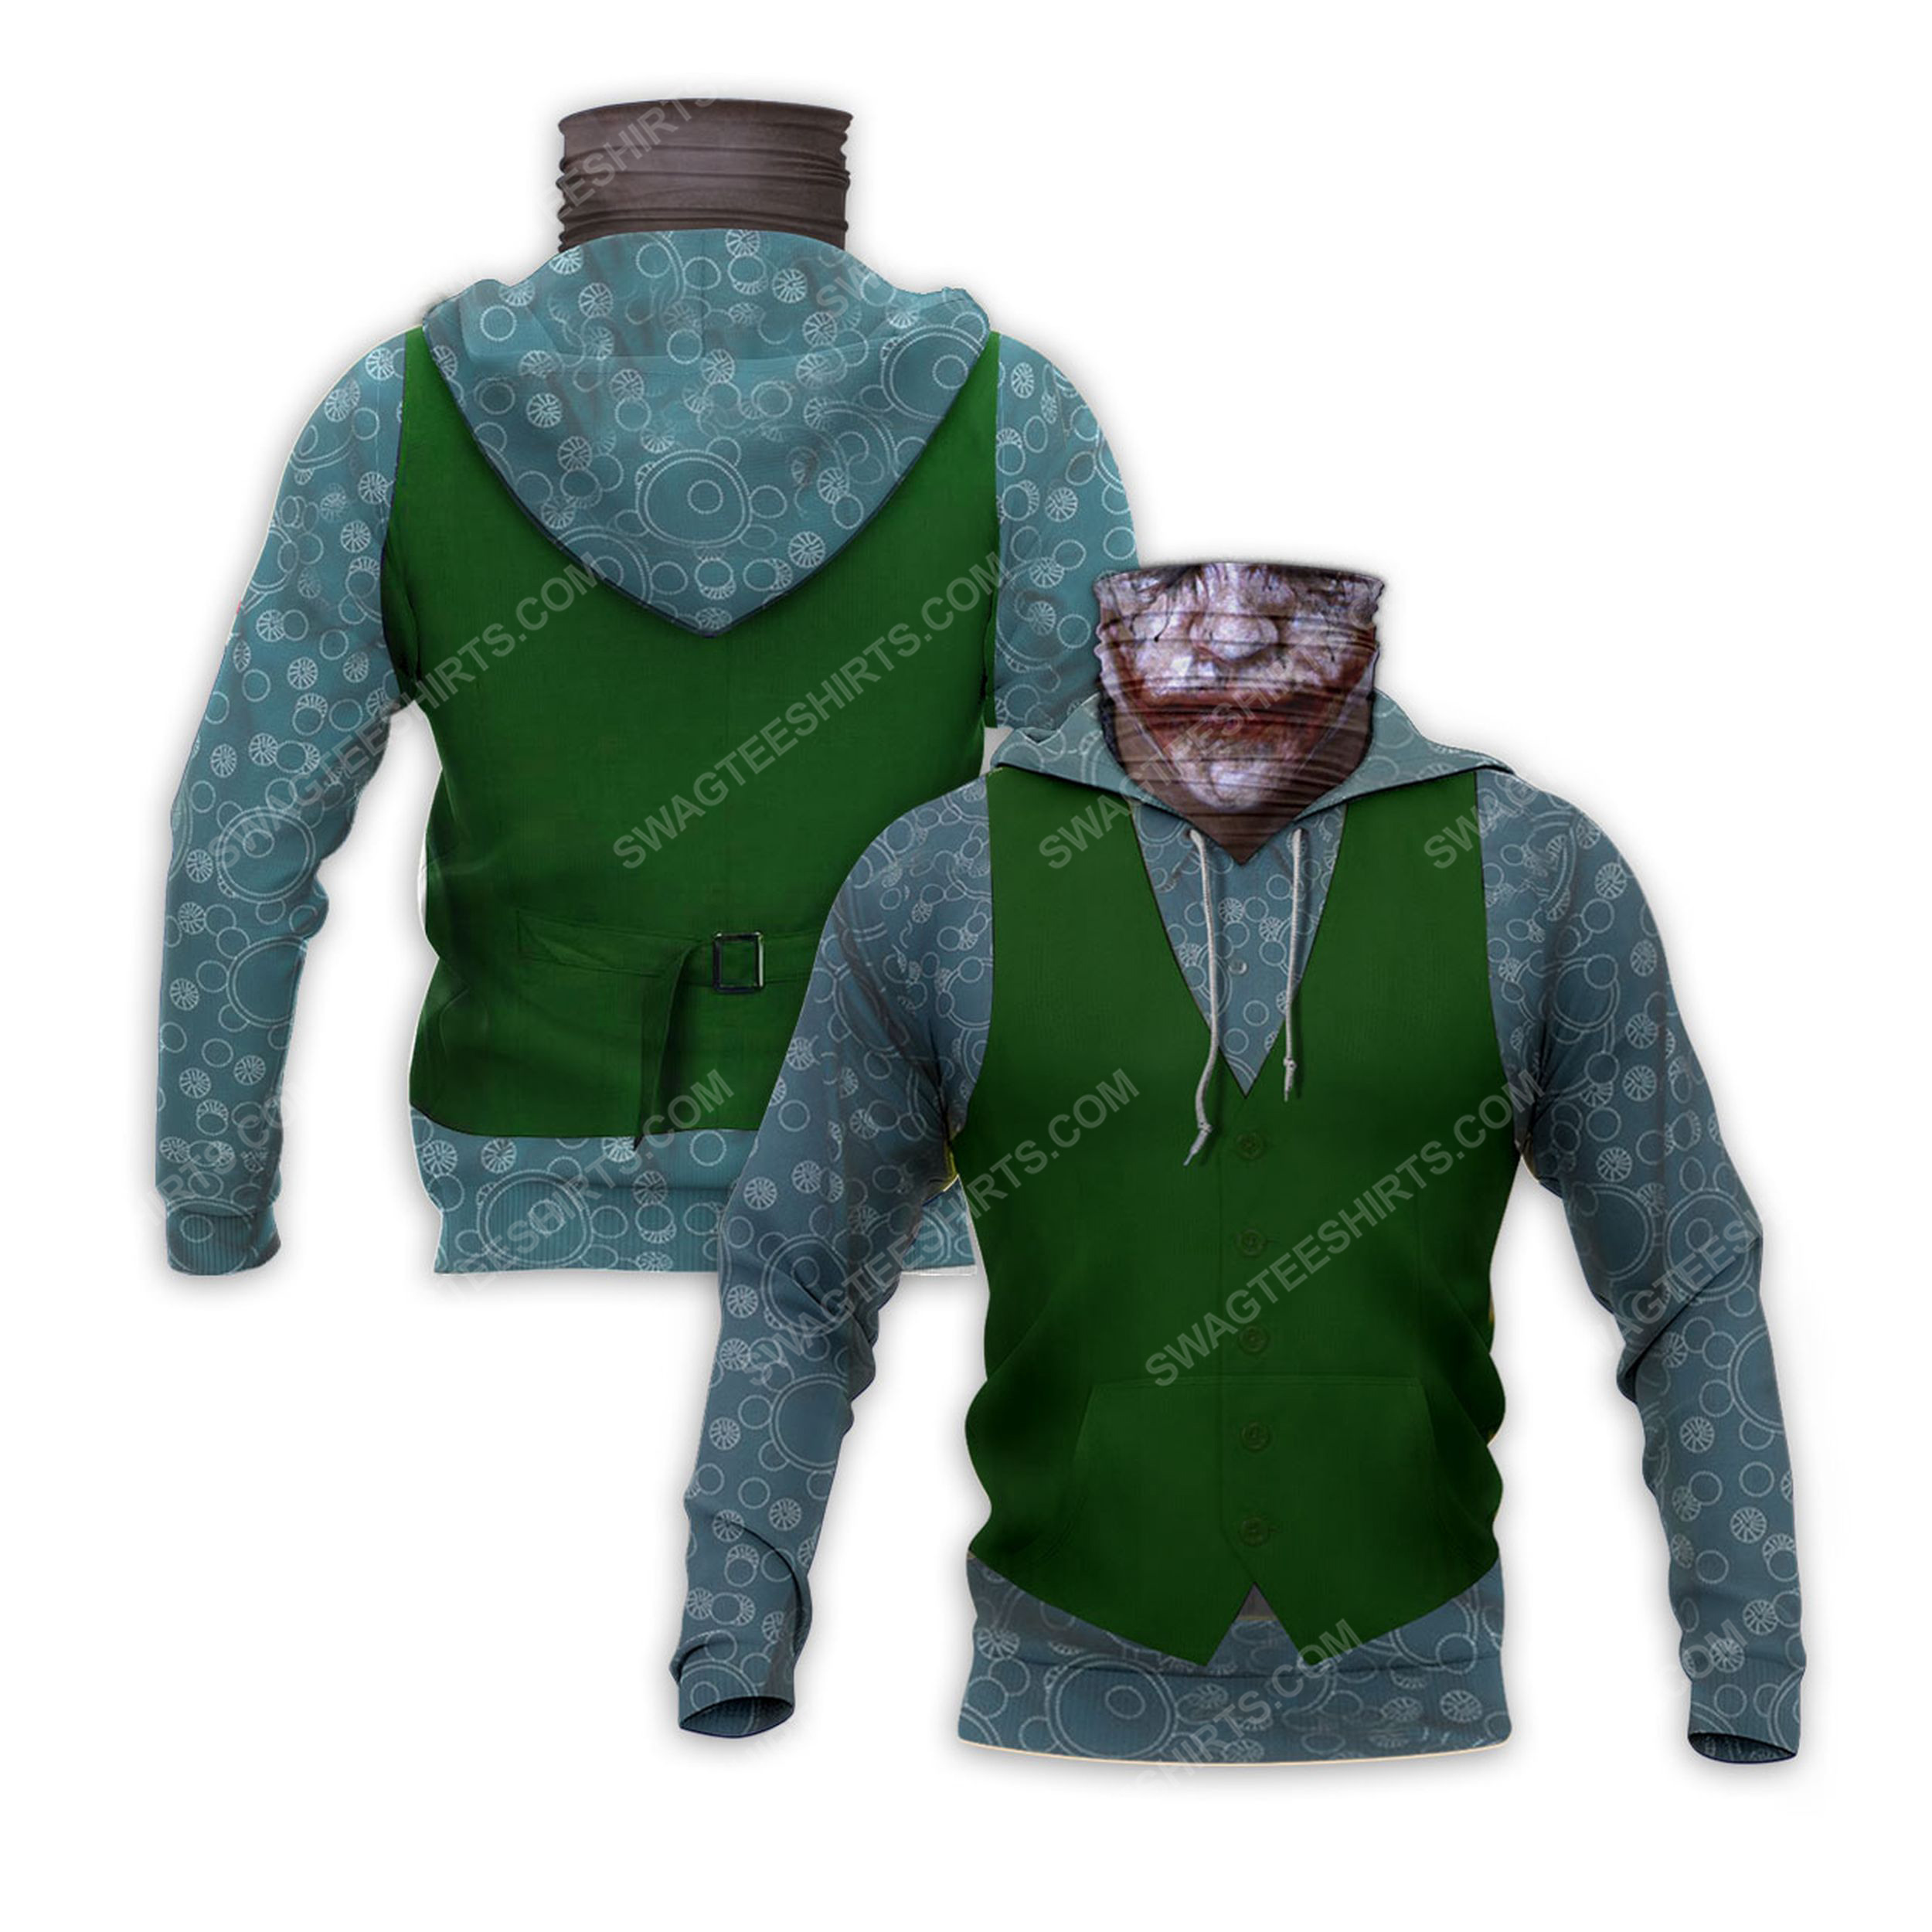 The joker with suit full print mask hoodie 2(1)